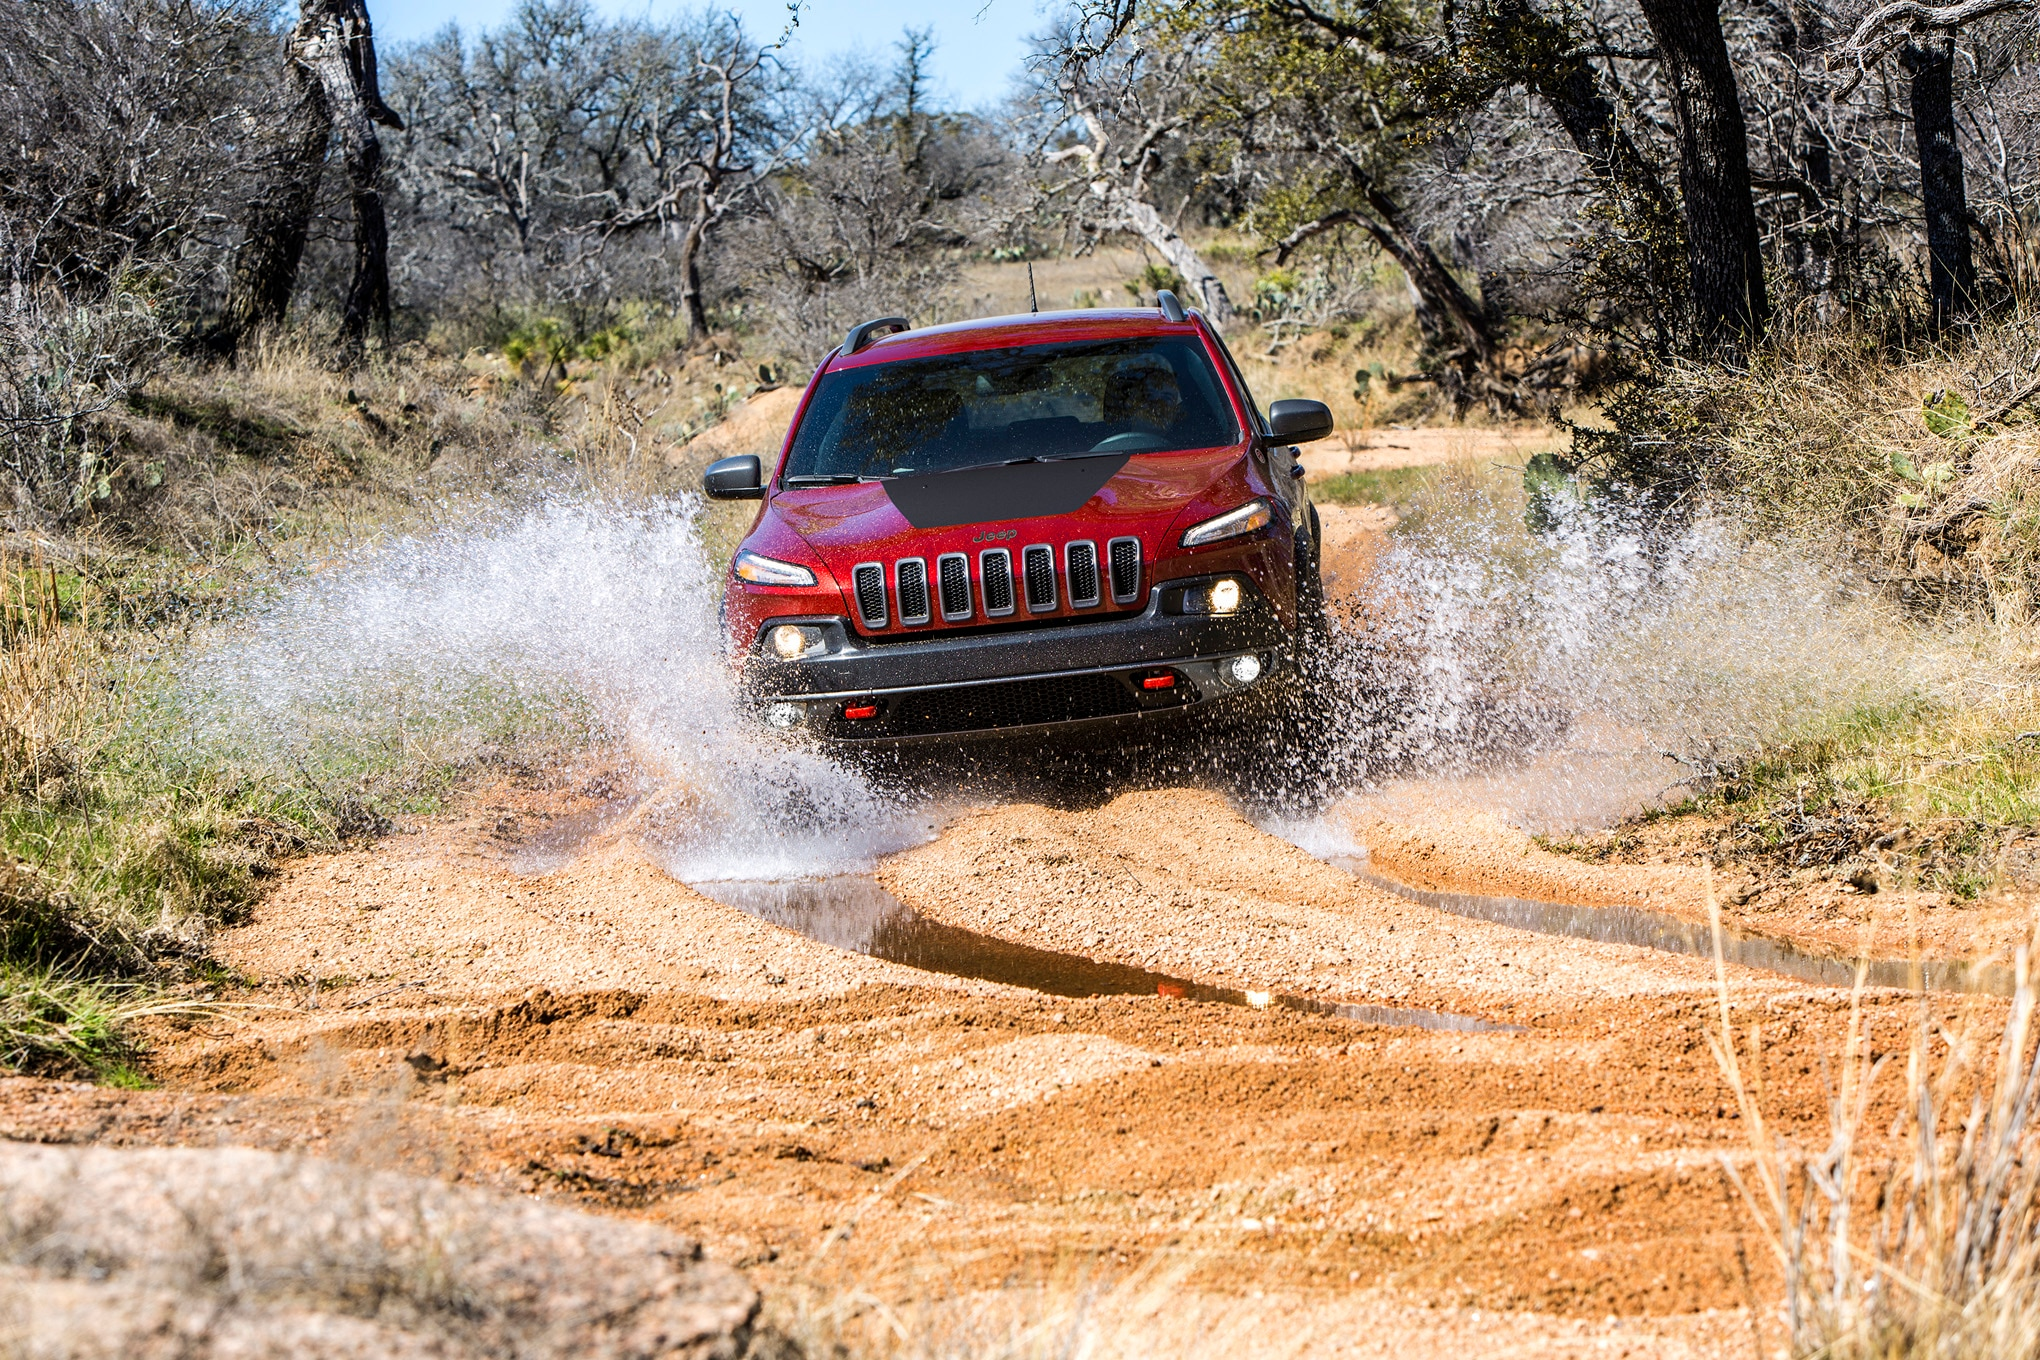 2017 jeep cherokee trailhawk water crossing sand off road offroad